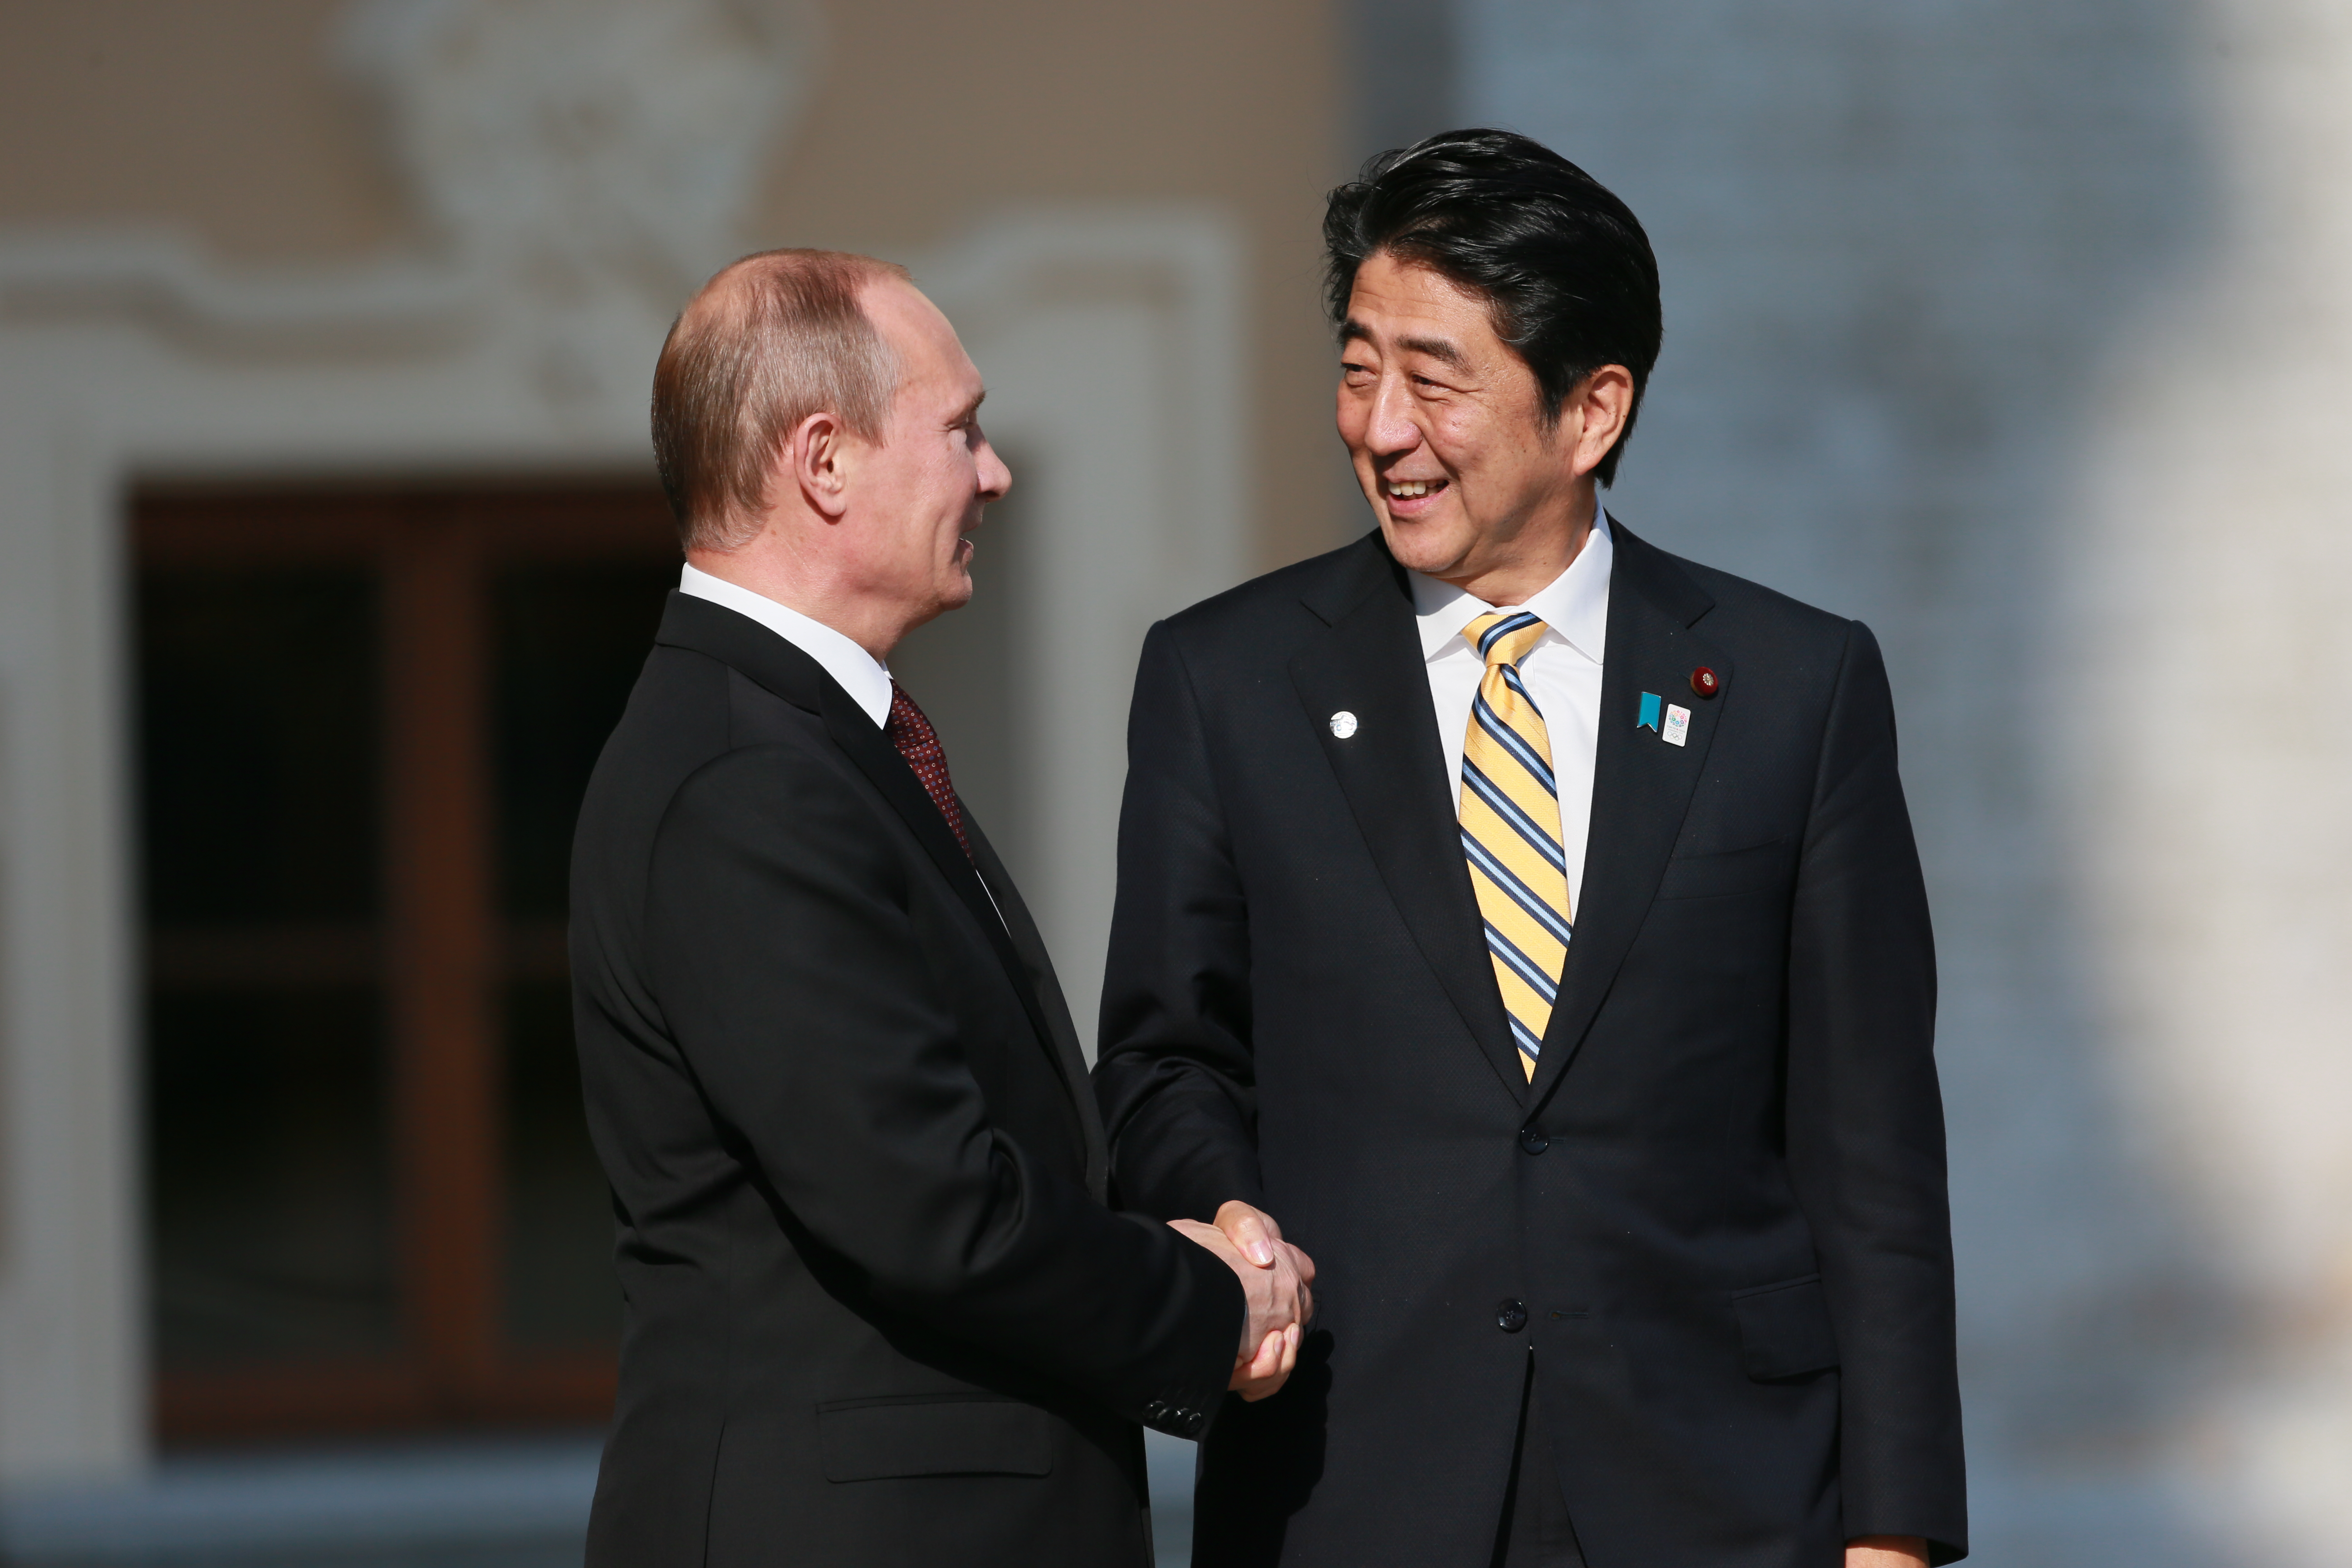 Russian President Vladimir Putin, left, greets Japanese Prime Minister Shinzo Abe at the G-20 summit on Sept. 5, 2013, in St. Petersburg